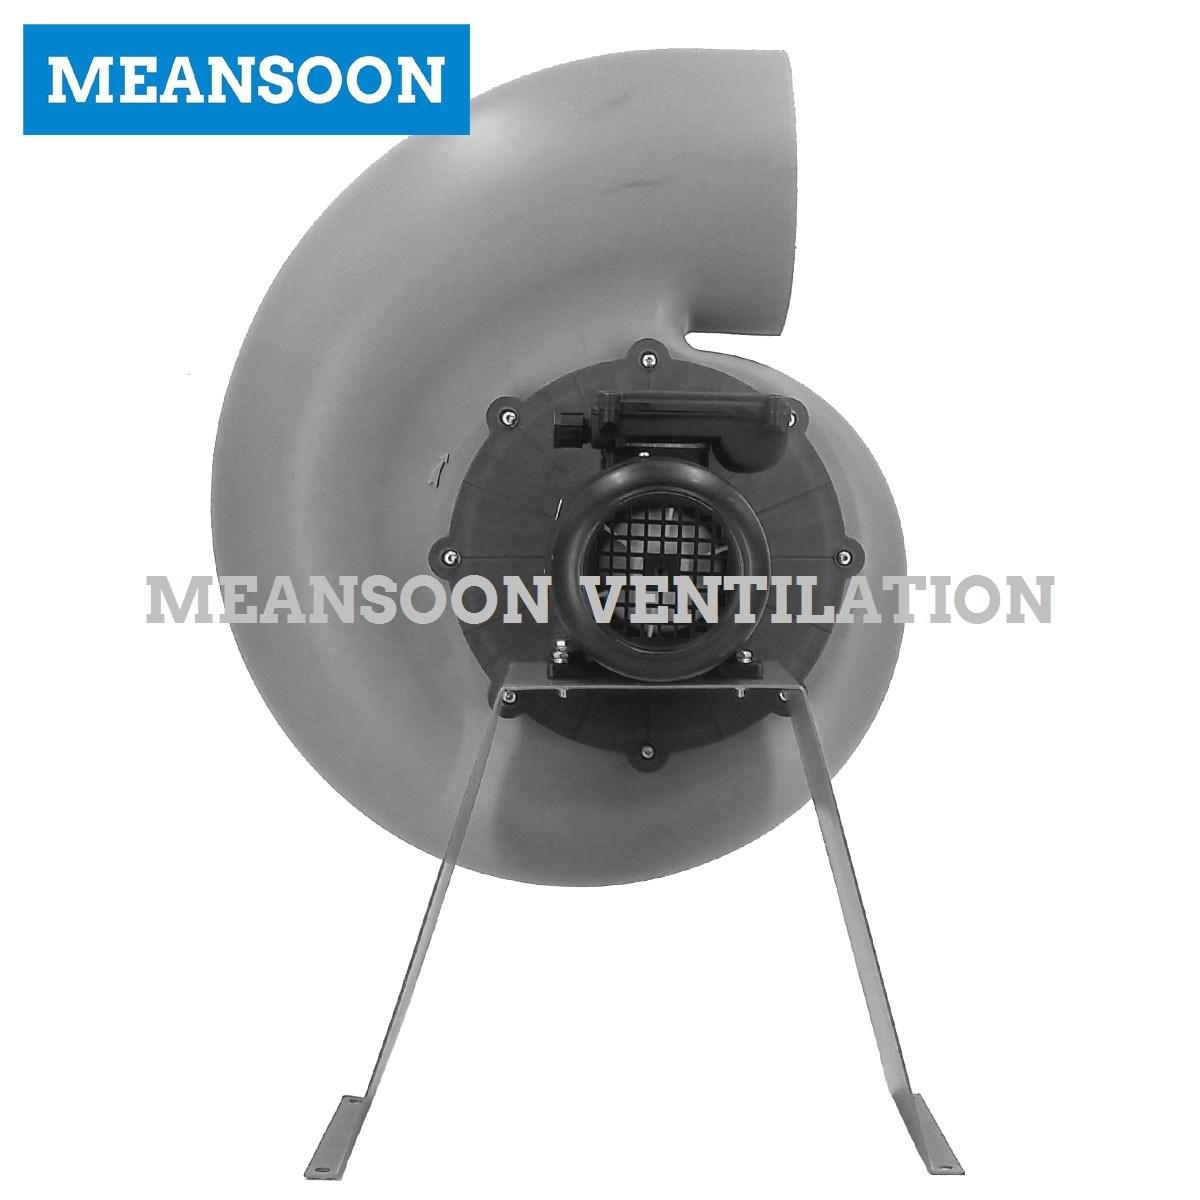 Plastic Corrosion Resistant Centrifugal Fan 200 for Laboratory Ventilation